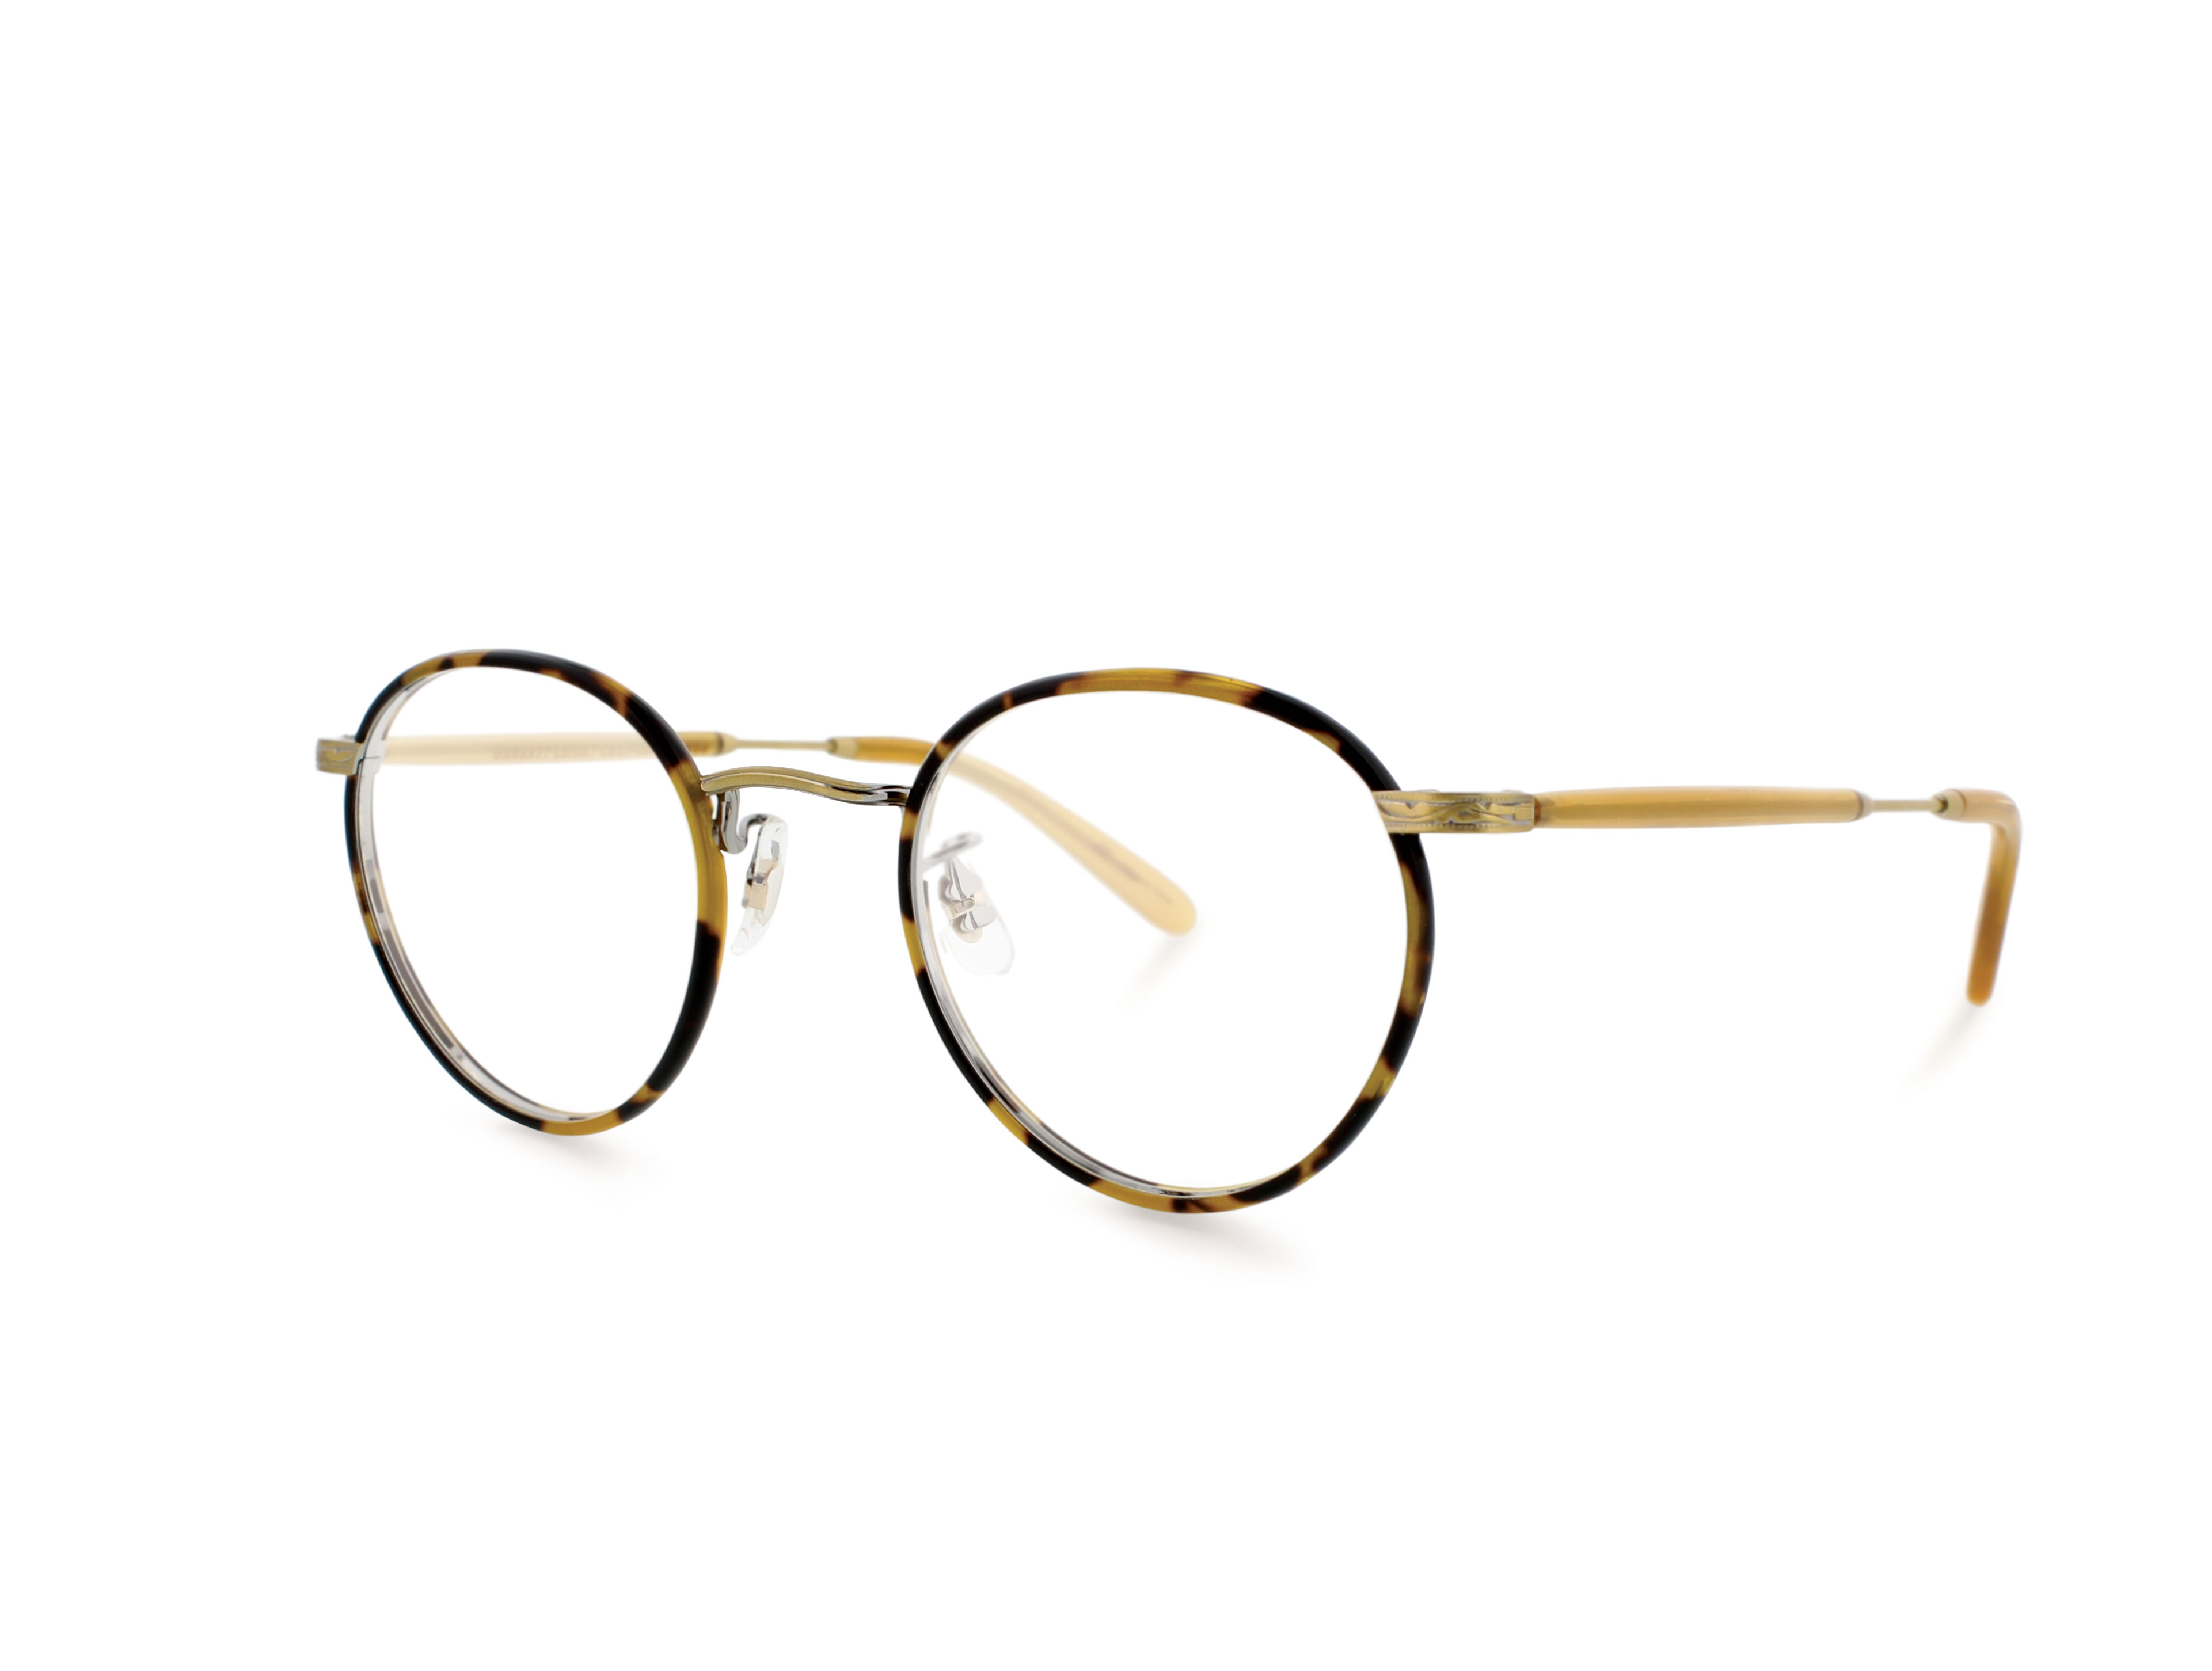 Diane reading glasses from Renee's Readers